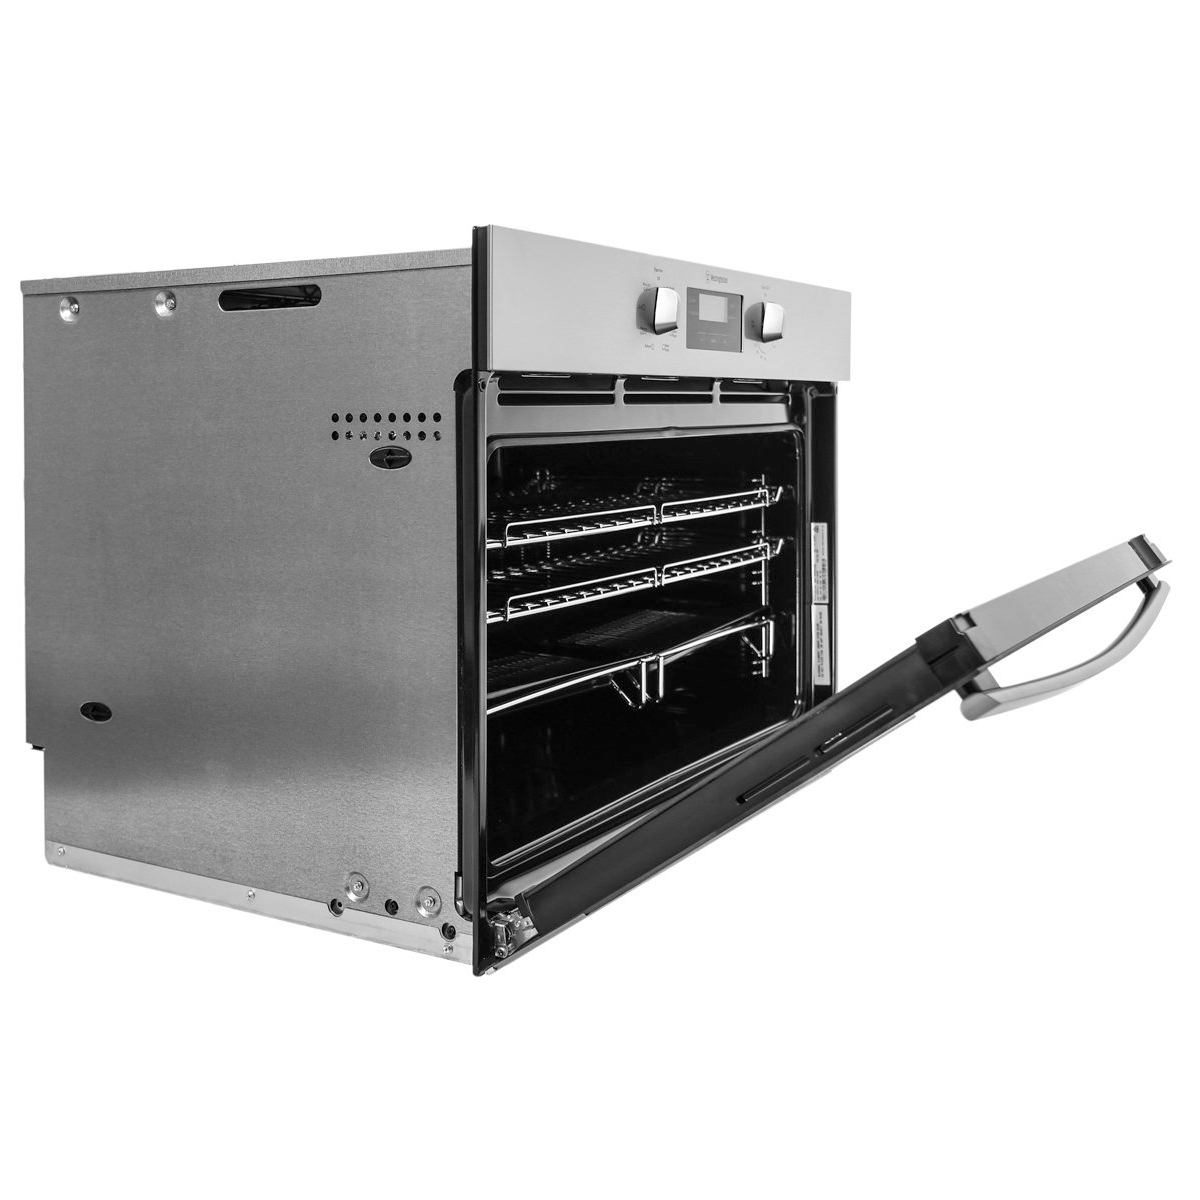 Westinghouse WVE914SB 90cm Electric Built-In Oven 72967